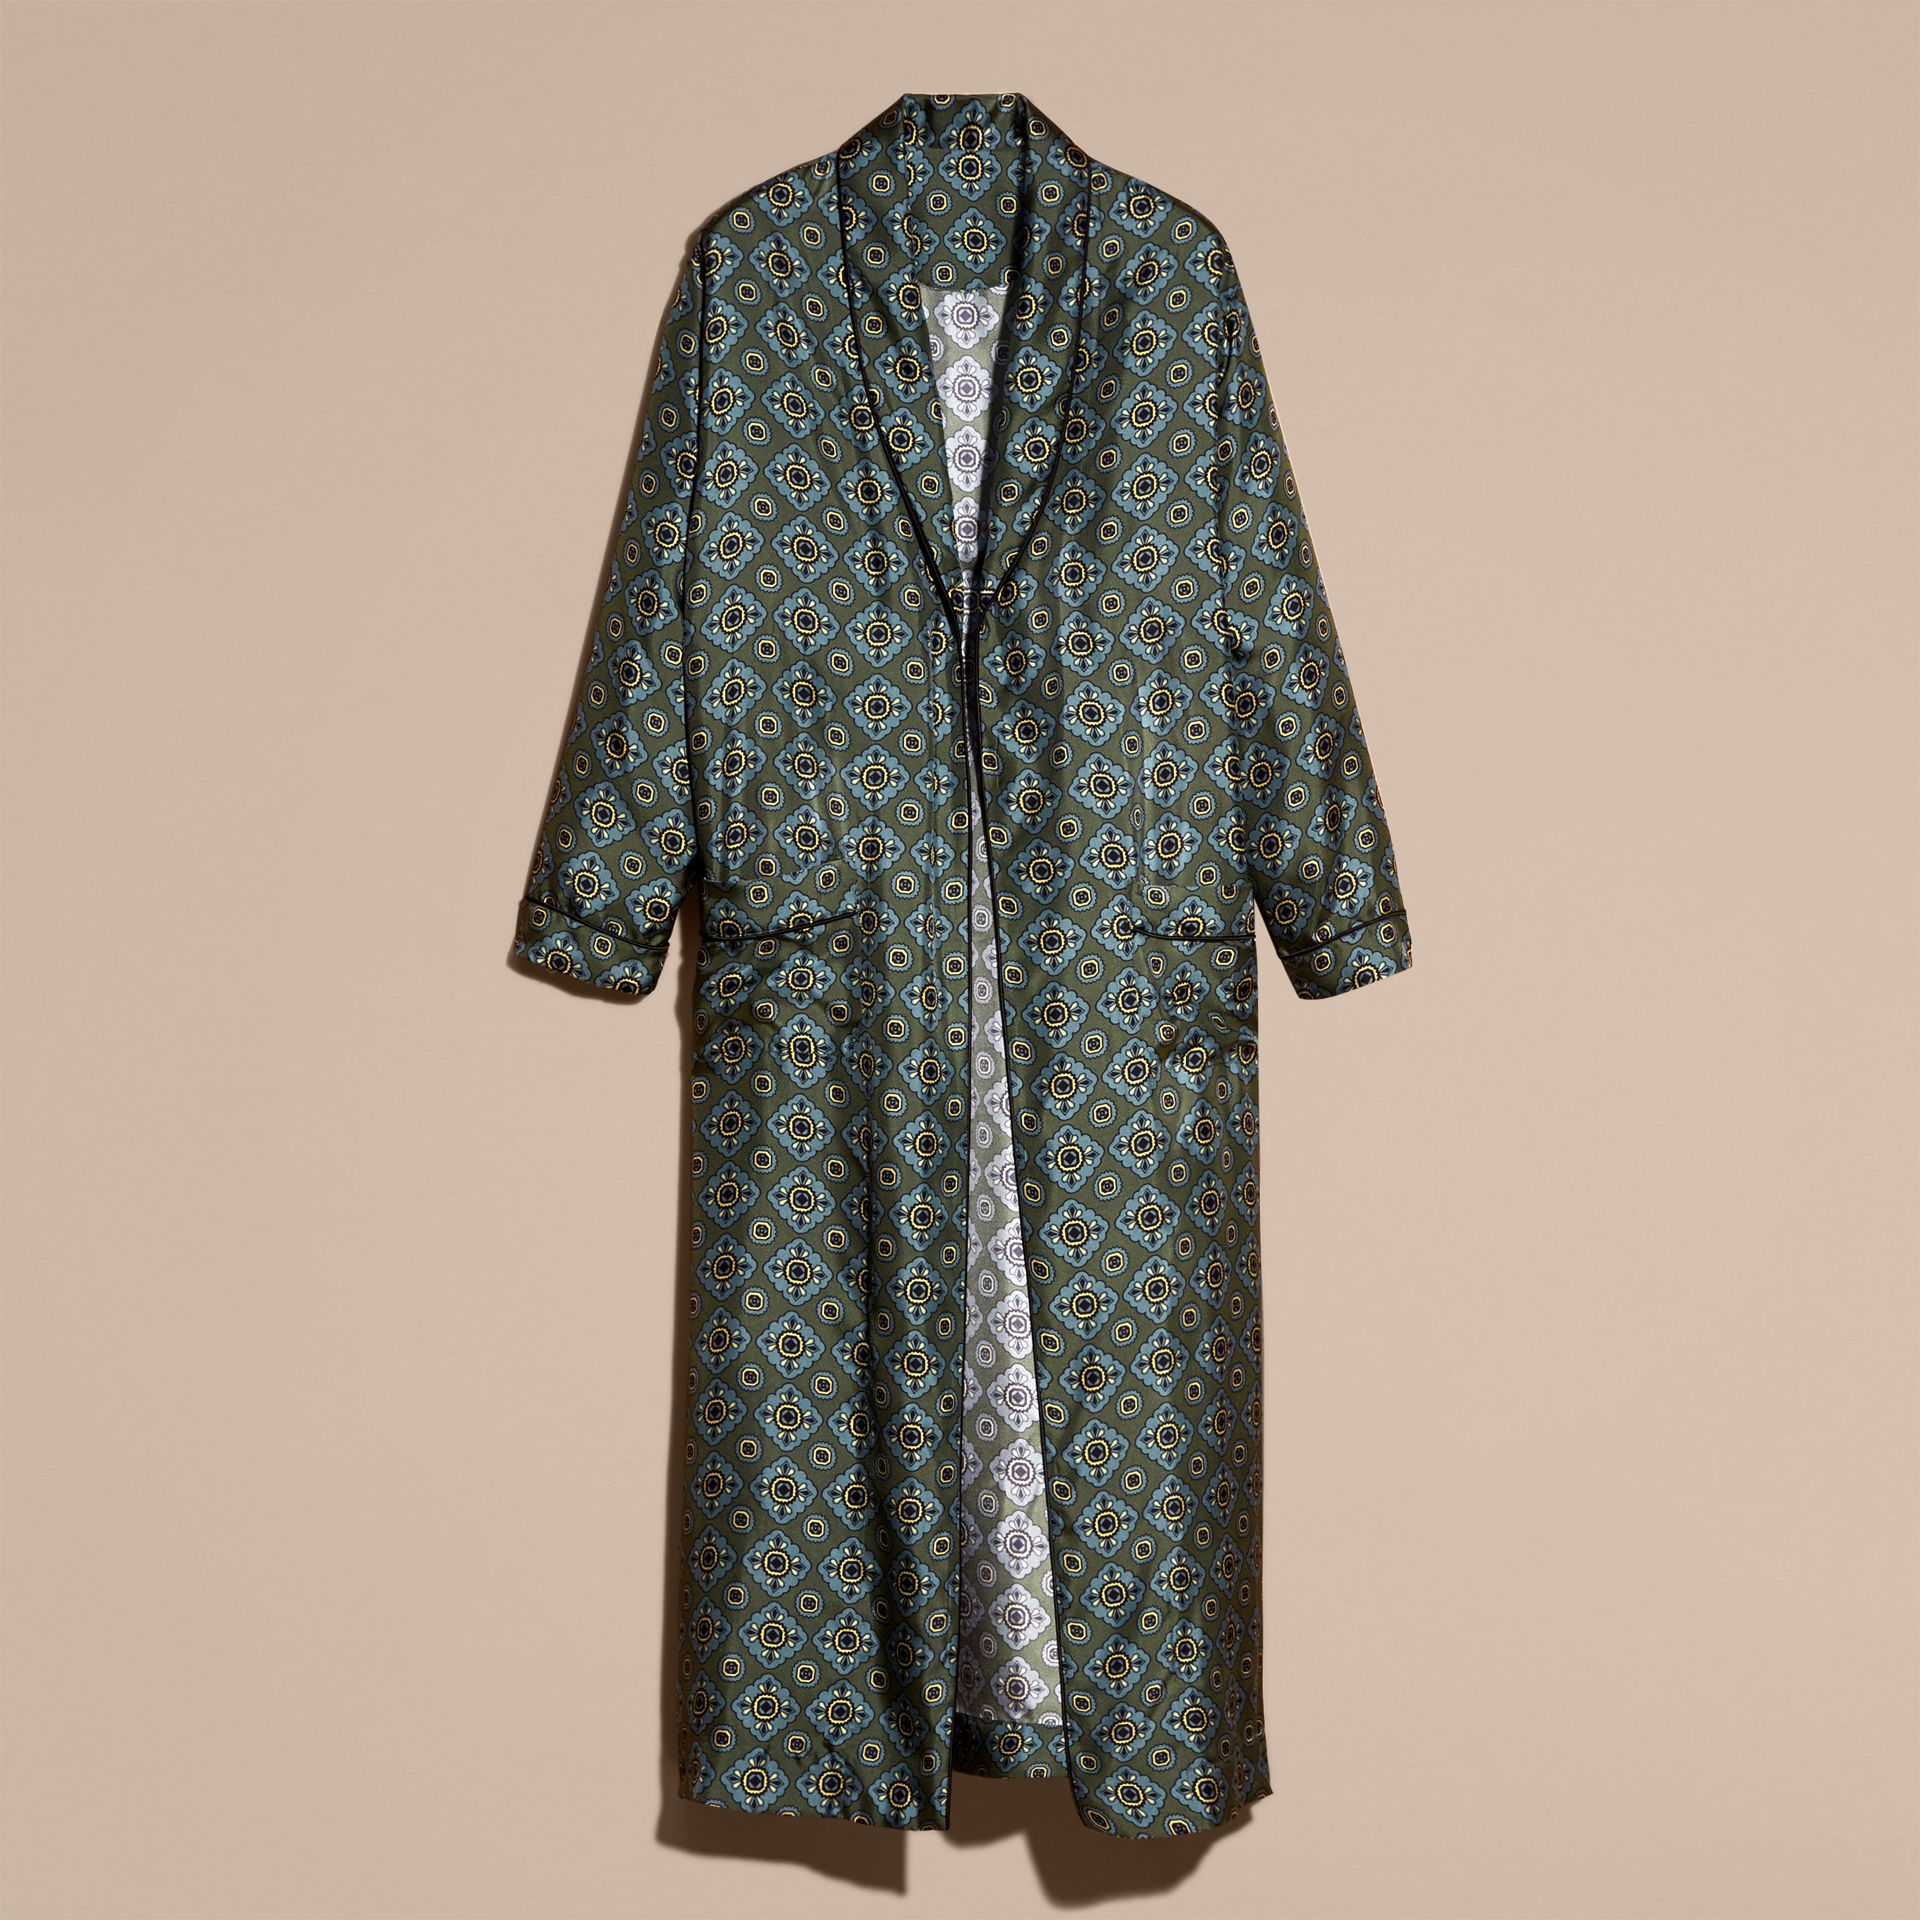 Lawn green Geometric Tile Print Silk Twill Dressing Gown Coat - gallery image 4